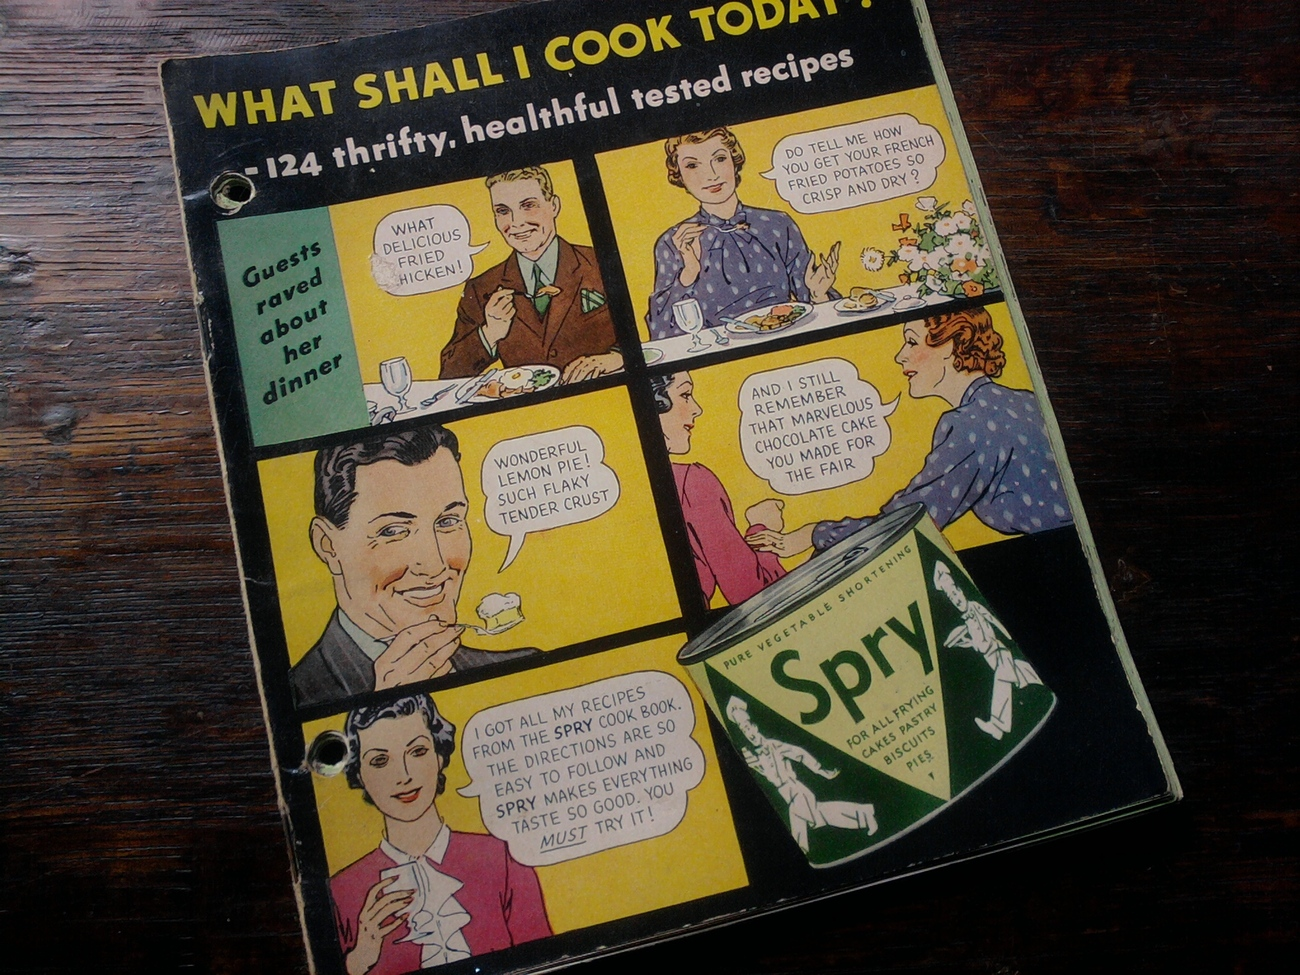 COOK BOOK - SPRY VEGETABLE SHORTENING - WHAT SHALL I COOK TODAY